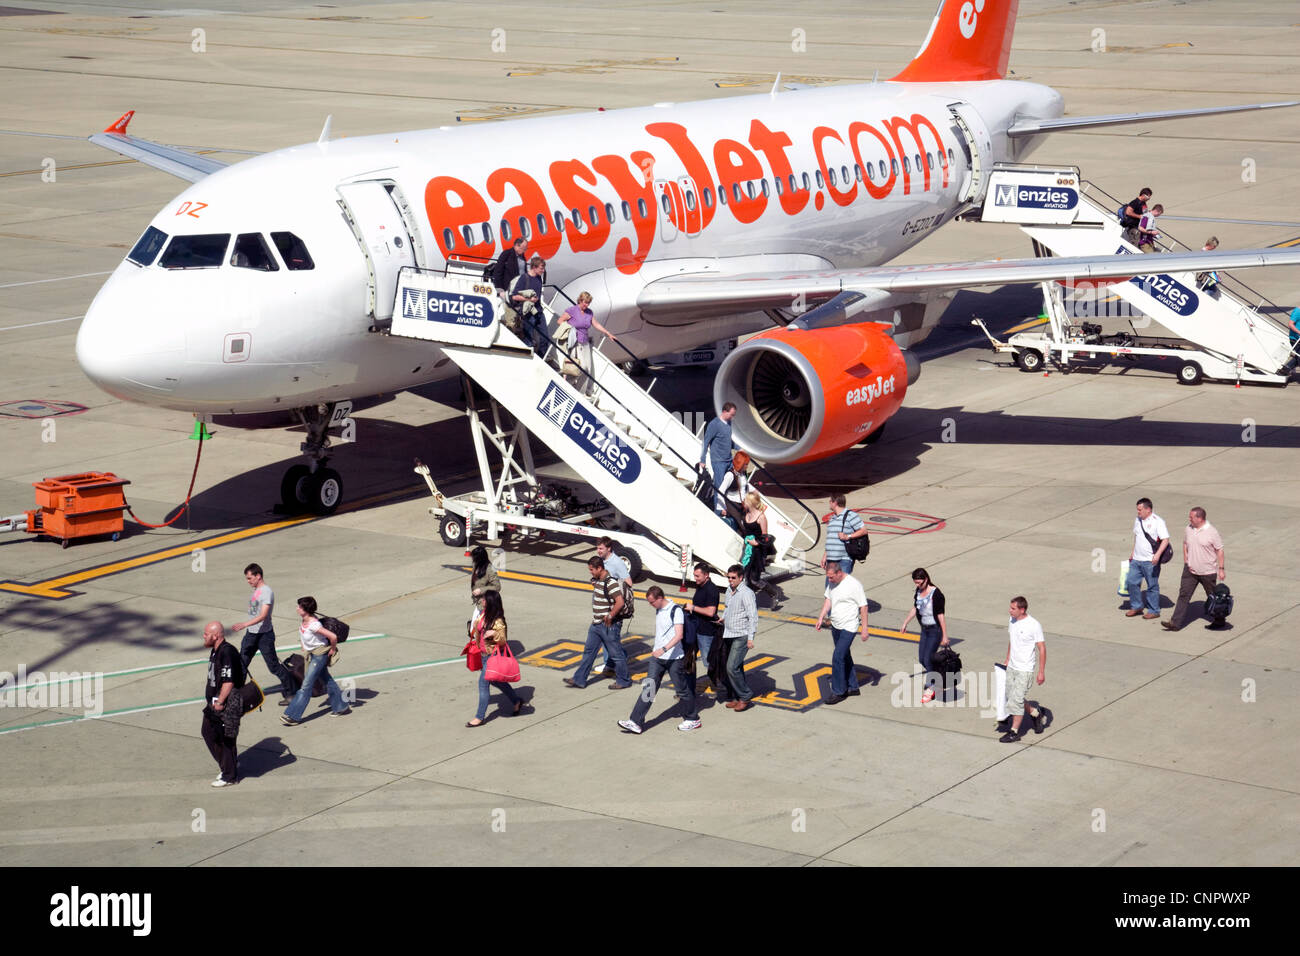 Passengers boarding an Easyjet plane, Stansted airport Essex UK - Stock Image